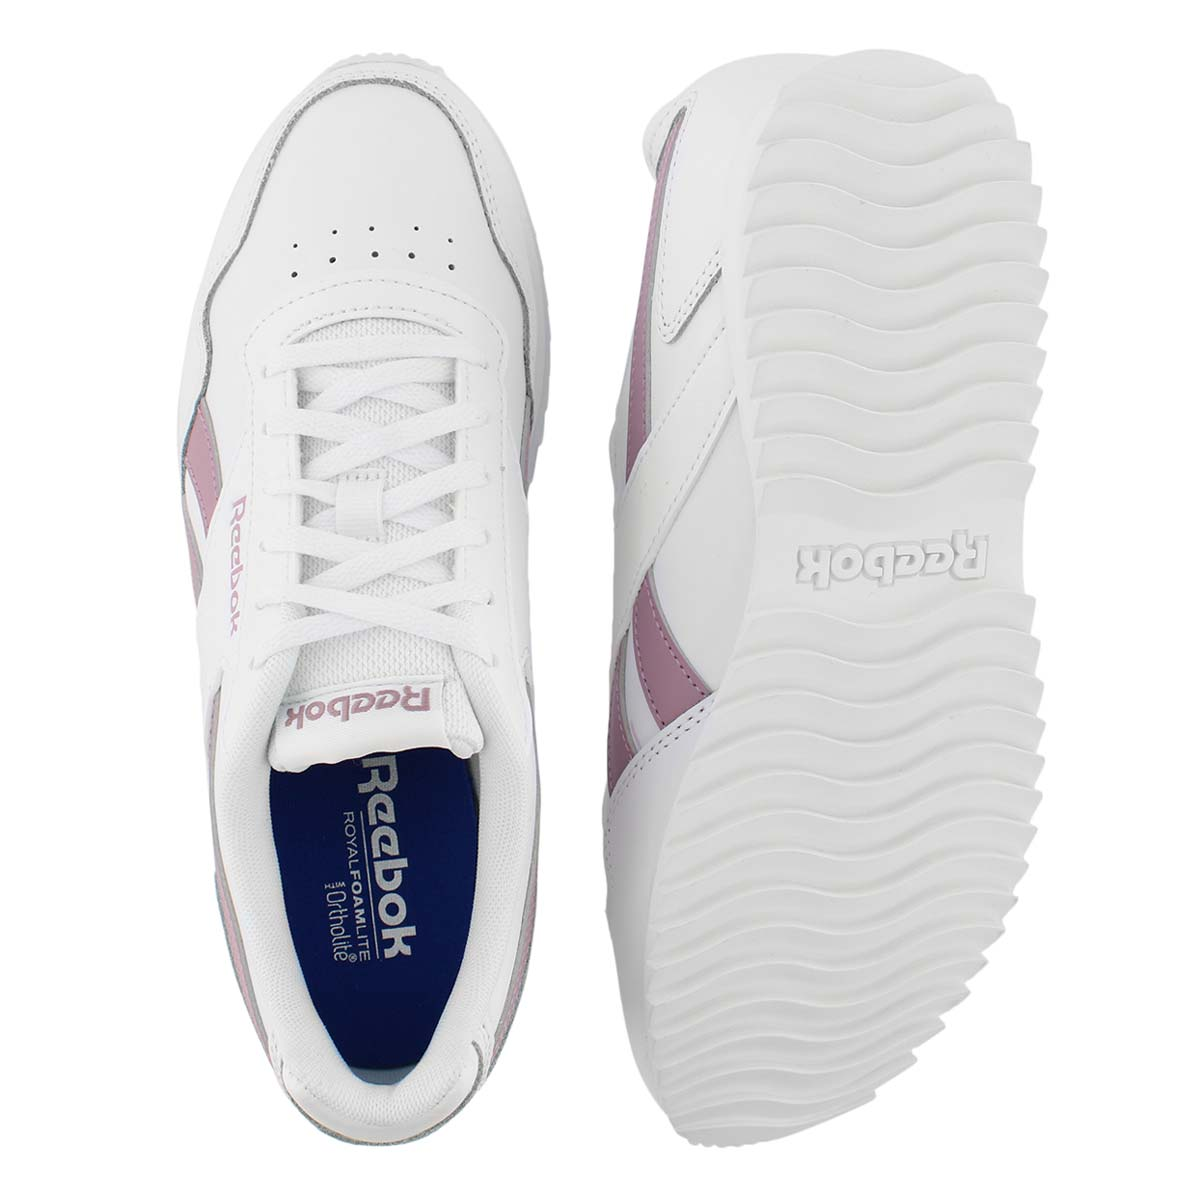 Lds Glide Ripple wht/llc fashion sneaker